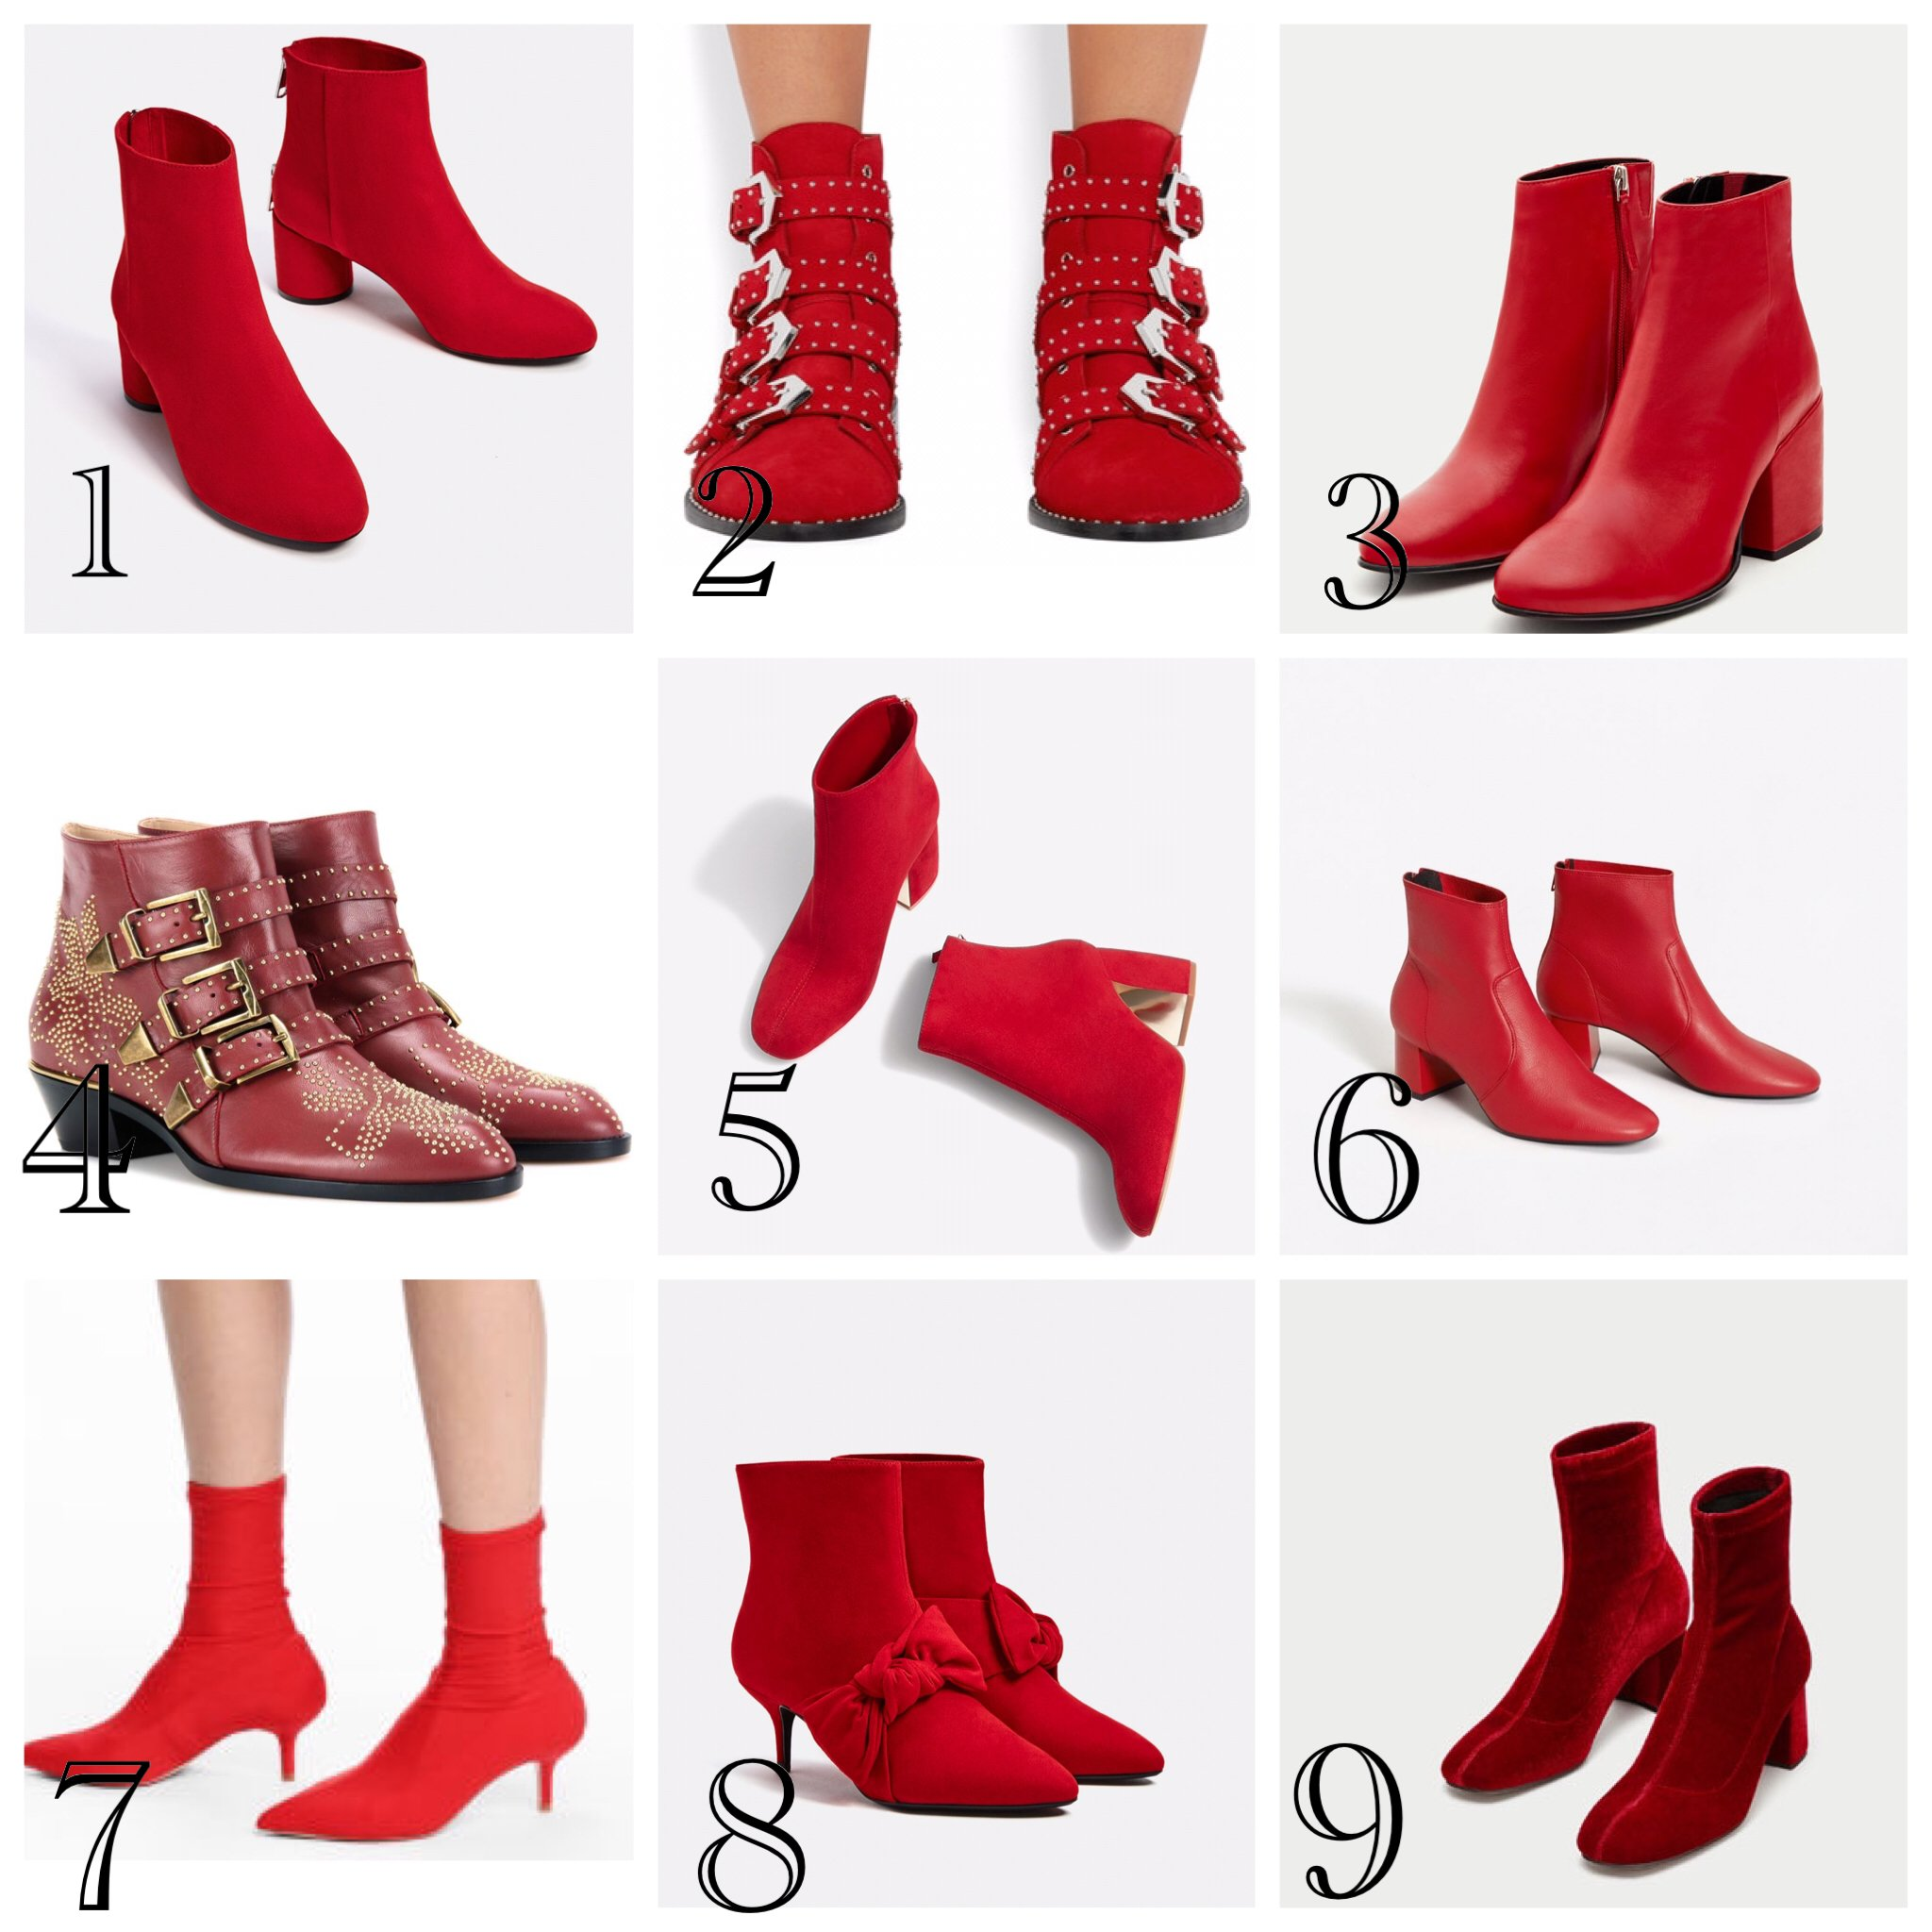 hadoka red boots fall.JPG